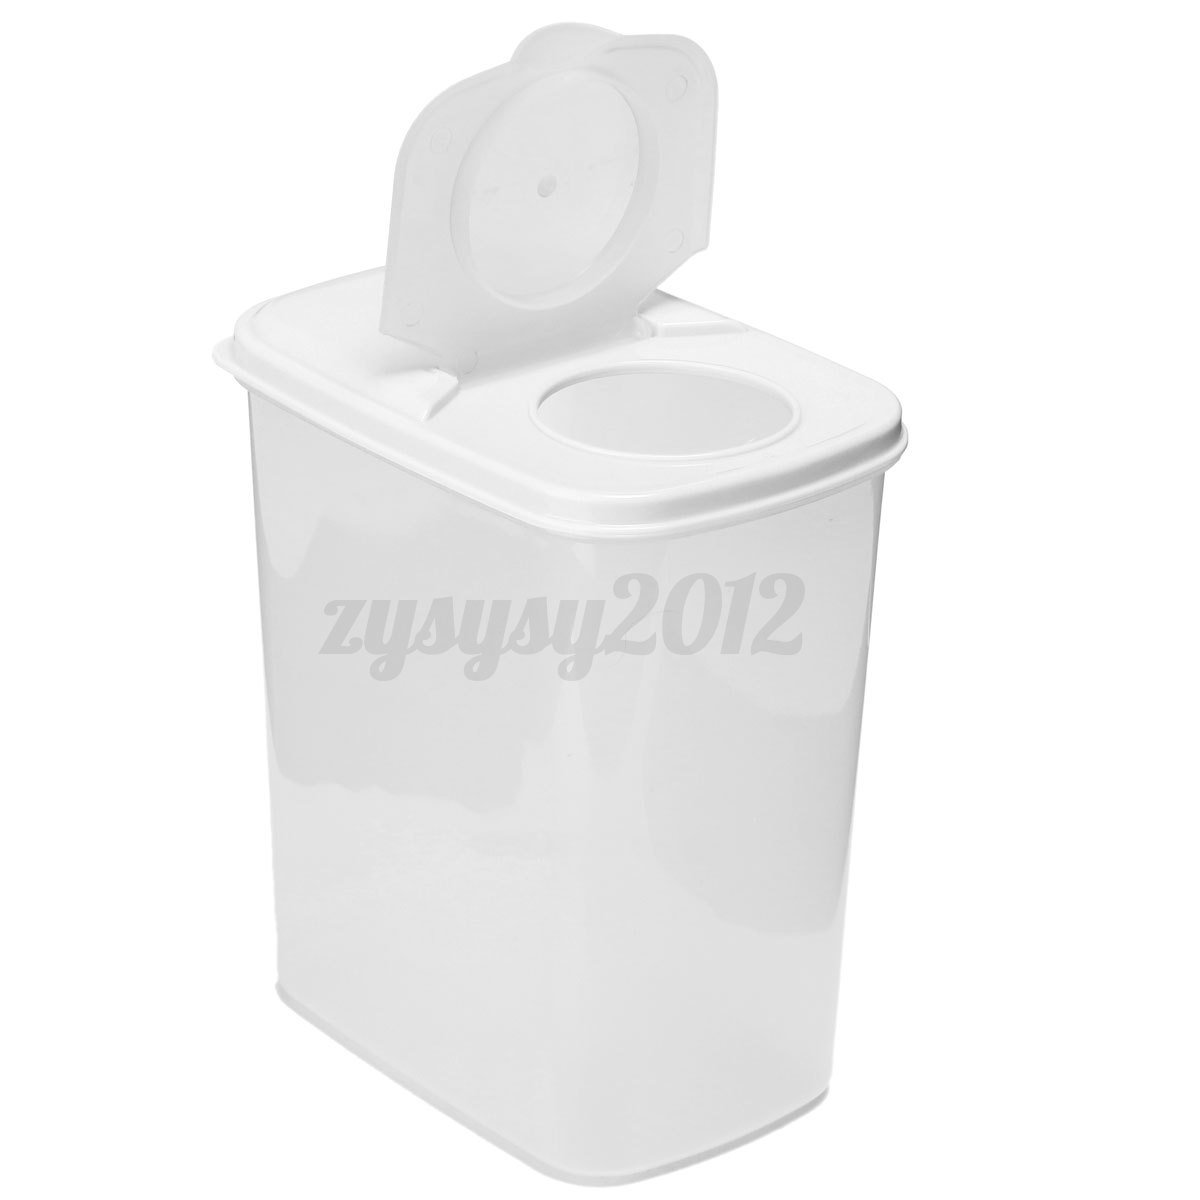 Food Container Storage Bottle Plastic Kitchen Spice Jar Cereal Bean With Lid Ebay